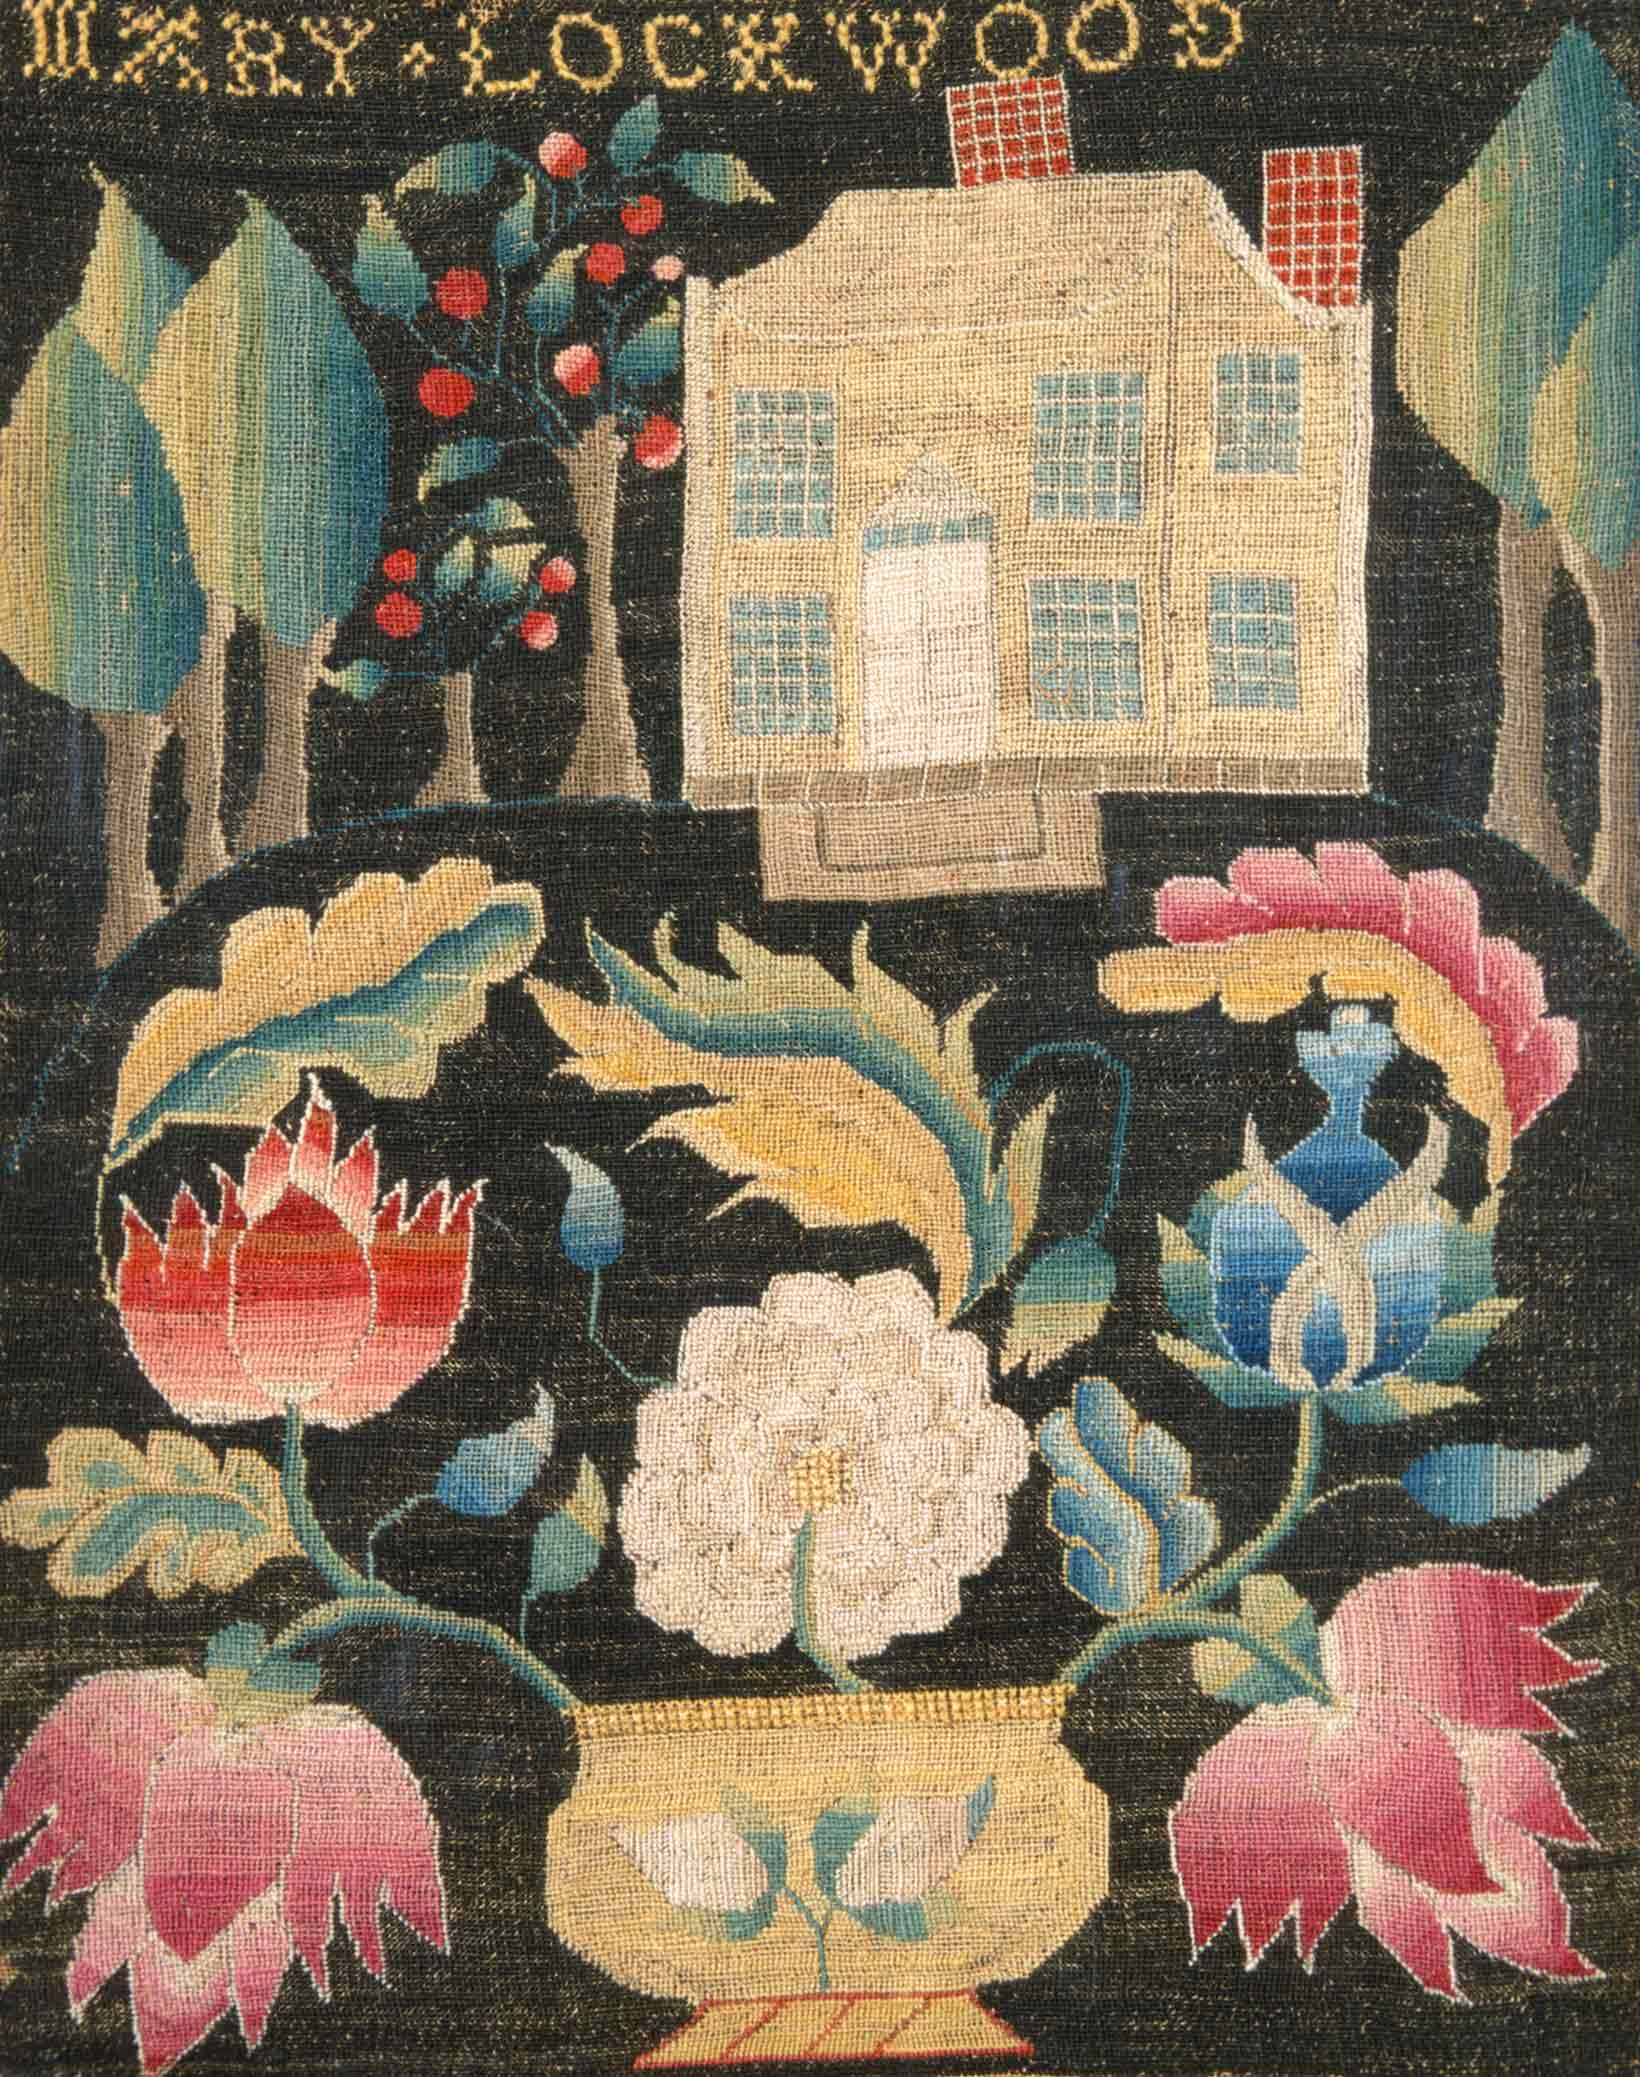 Stitching It Together Florence Griswold Museum